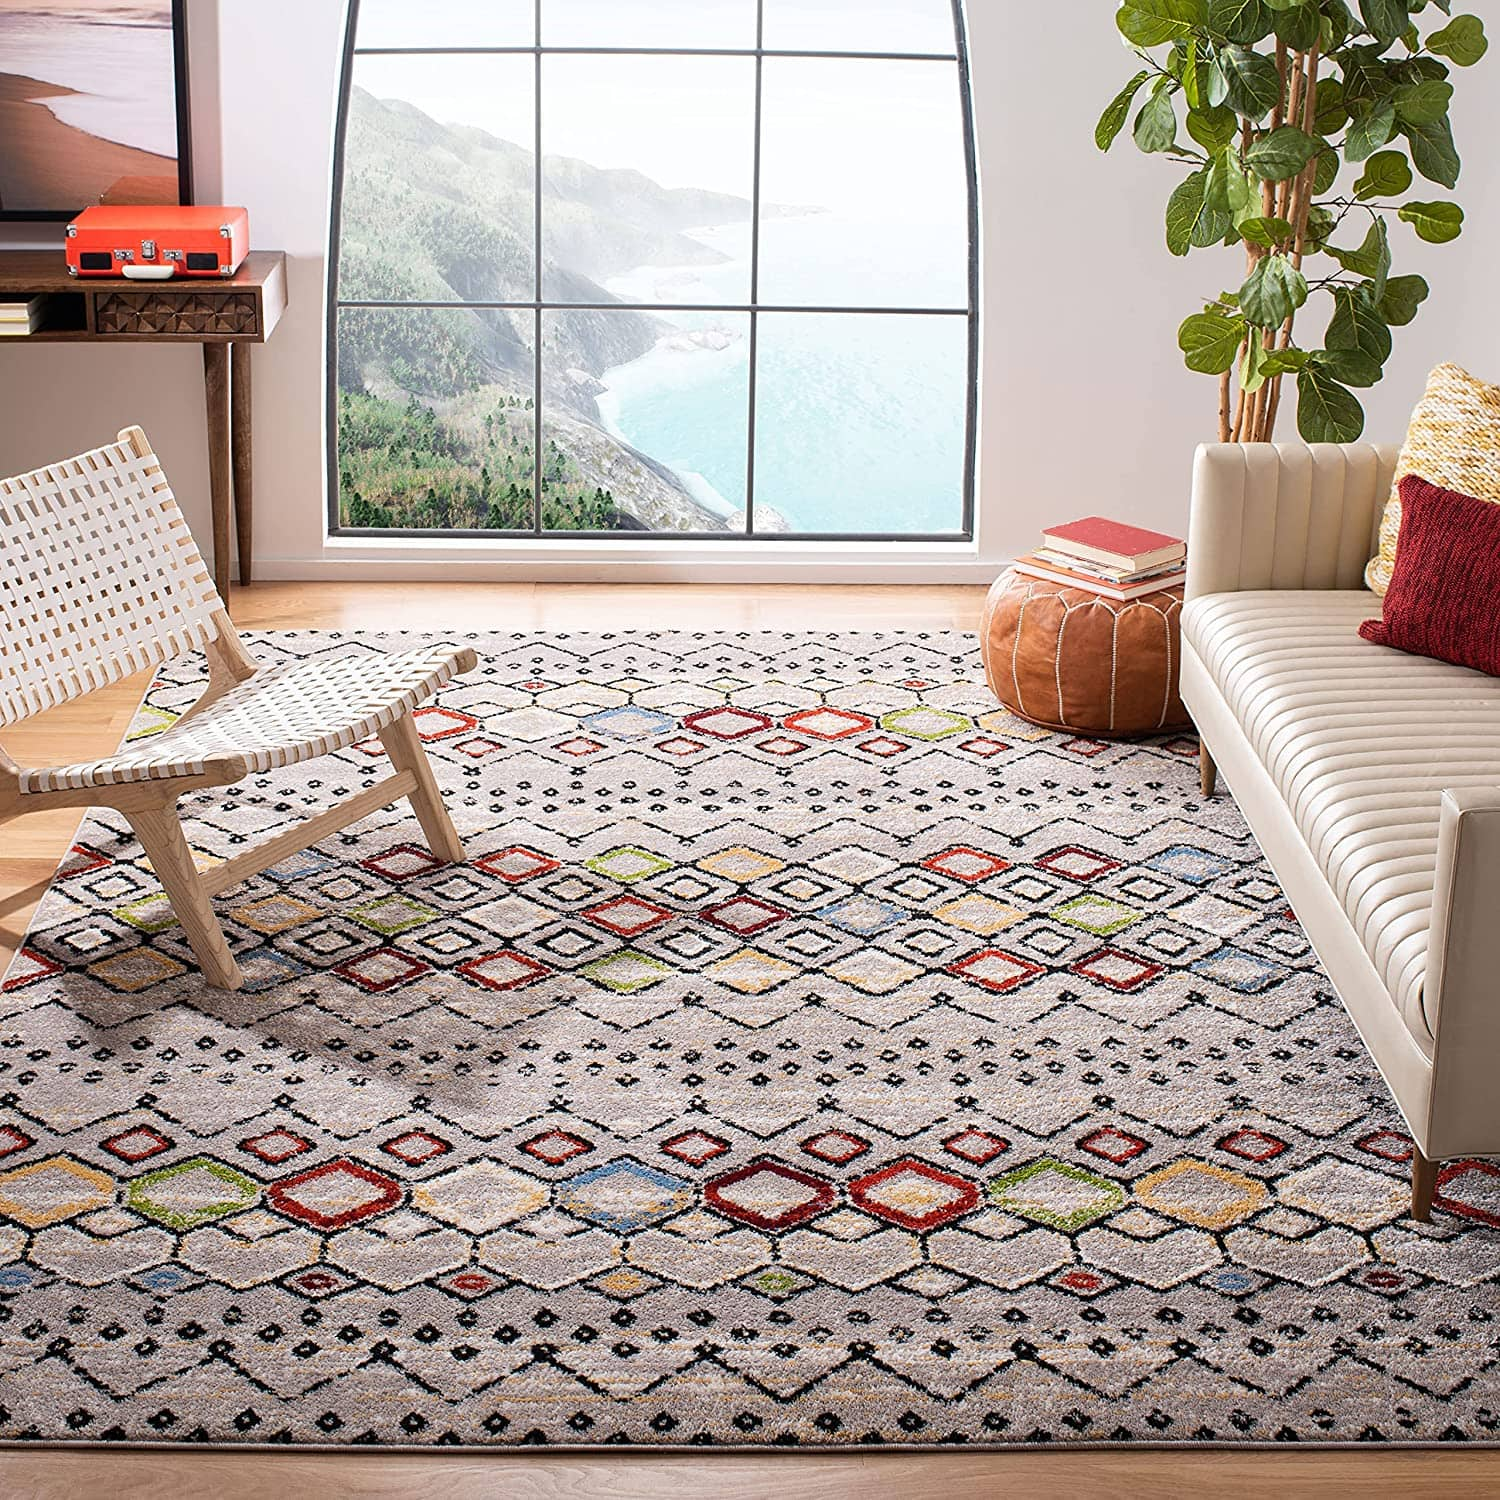 """5'1"""" x 7'6"""" Safavieh Amsterdam Collection Area Rug (2 Colors) $35 + Free Shipping"""